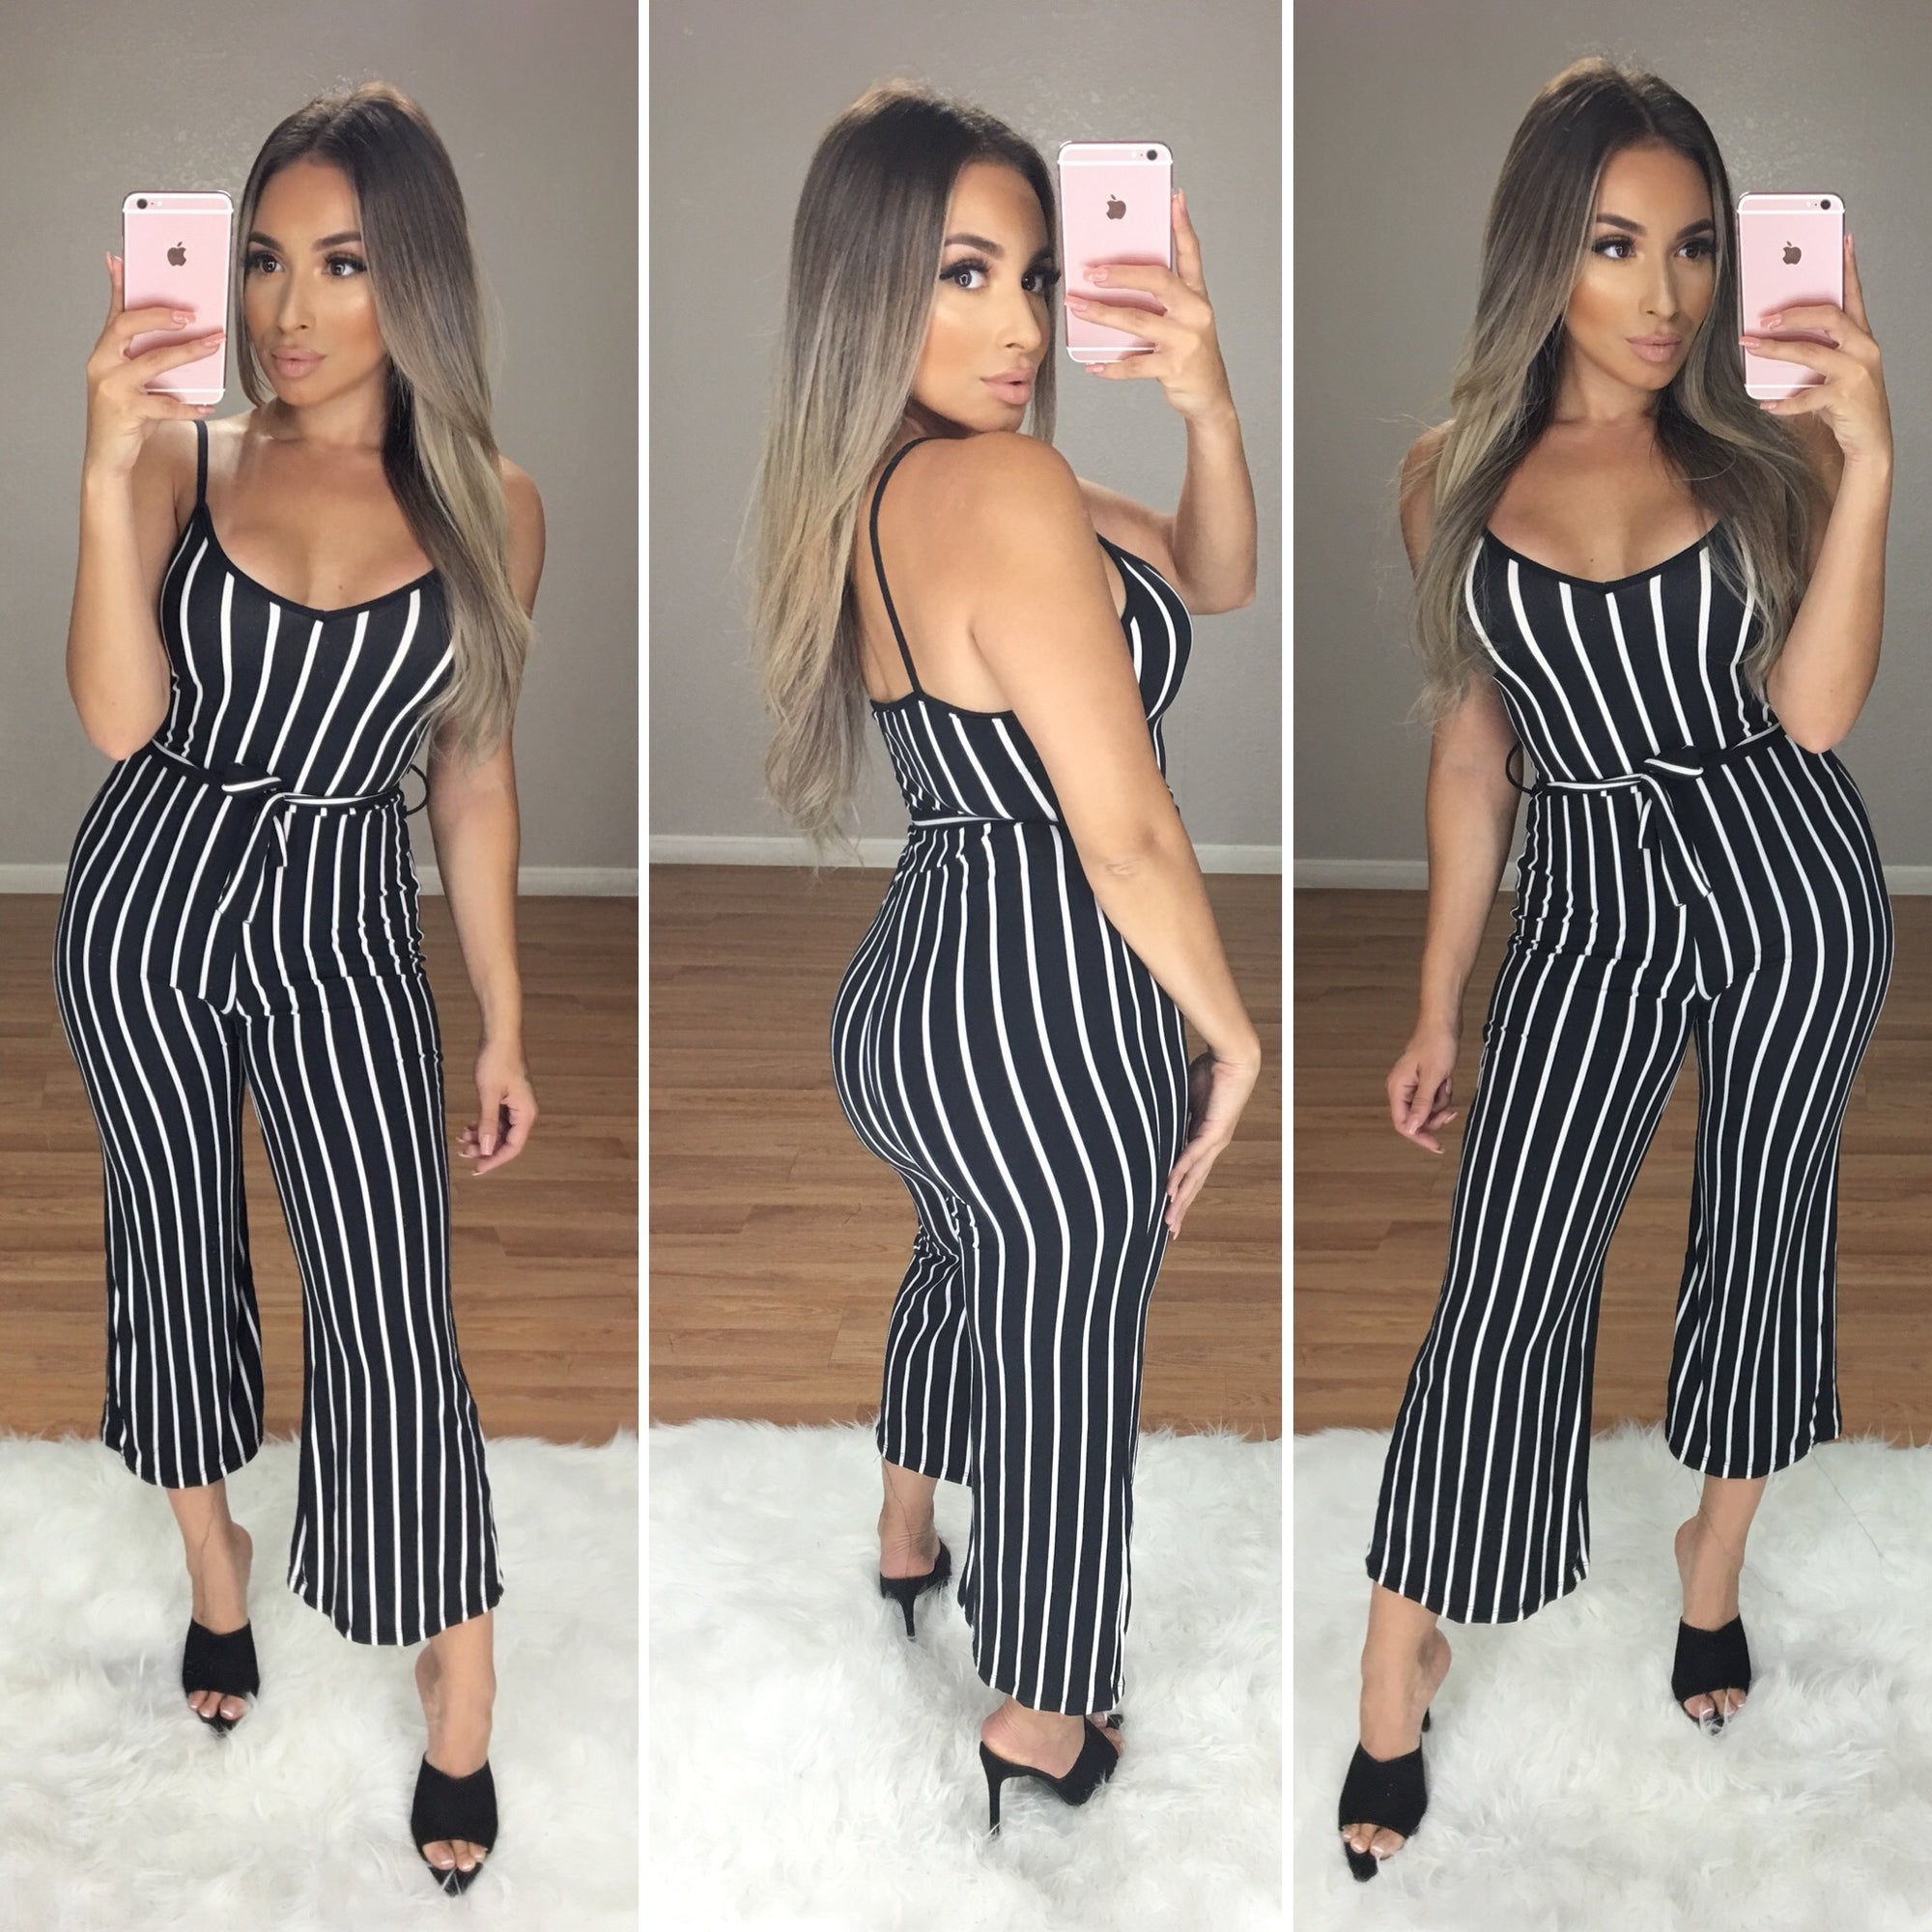 City Babe Striped Jumper (Black/White)